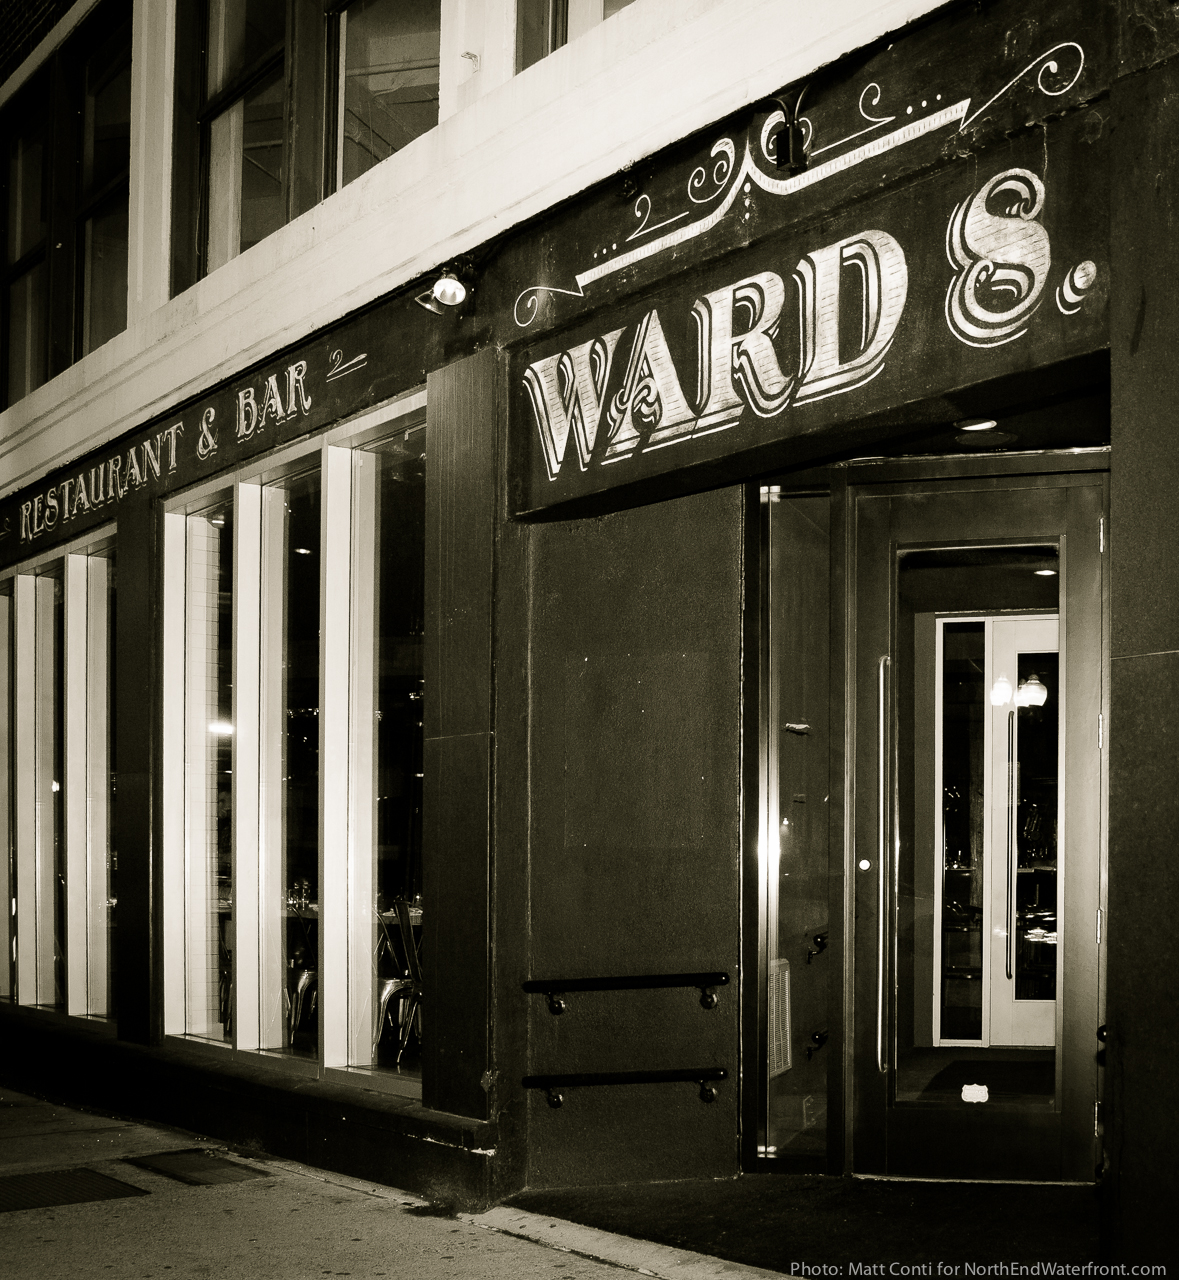 Ward 8 Restaurant & Bar at 90 N. Washington Street